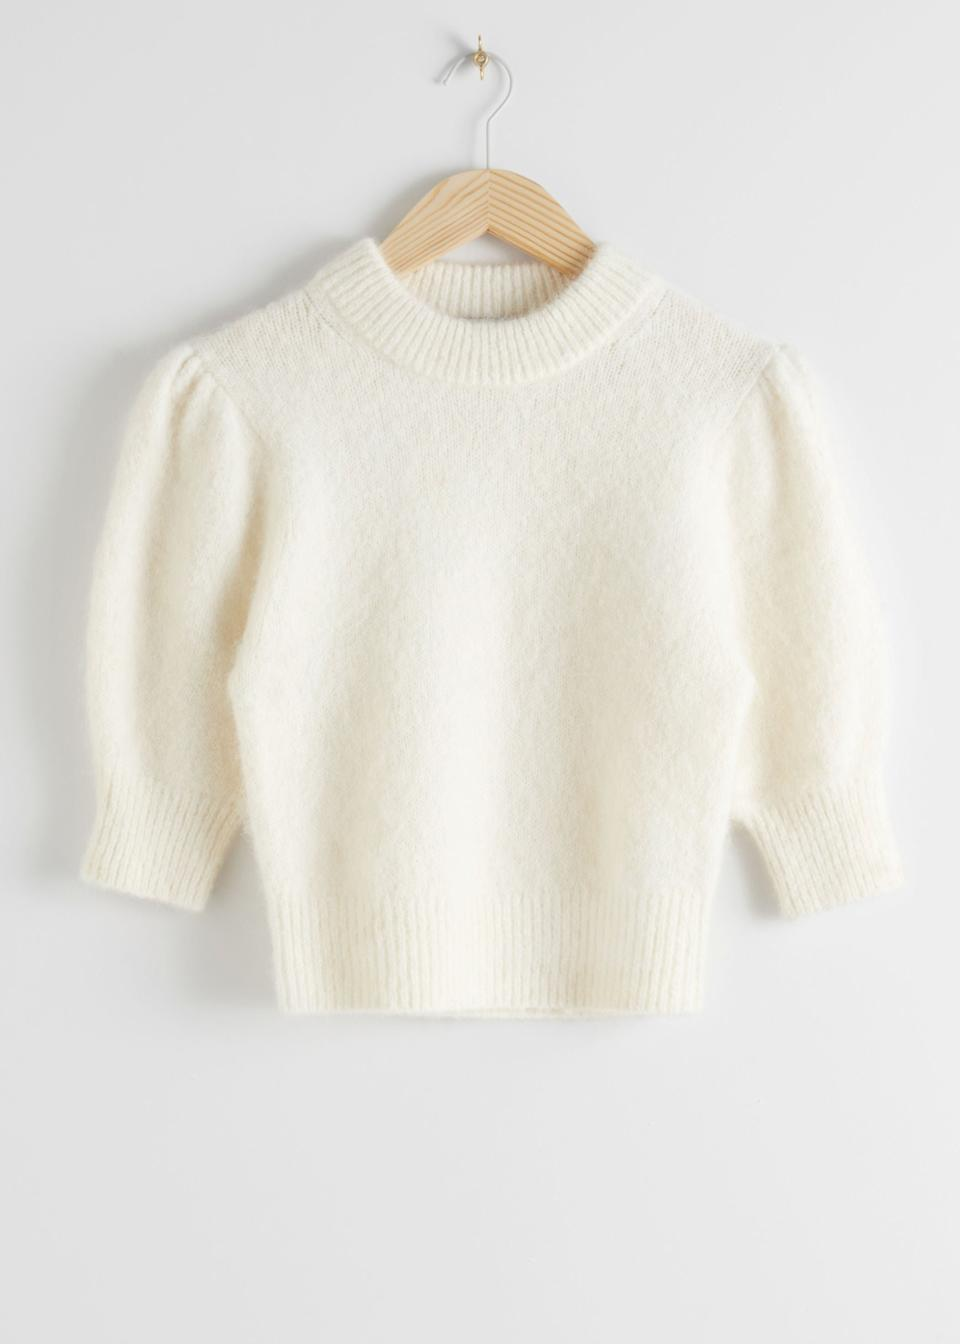 "<br><br><strong>& Other Stories</strong> Alpaca Wool Blend Puff Sleeve Jumper, $, available at <a href=""https://go.skimresources.com/?id=30283X879131&url=https%3A%2F%2Fwww.stories.com%2Fen_usd%2Fclothing%2Fknitwear%2Fsweaters%2Fproduct.alpaca-wool-blend-puff-sleeve-jumper-white.0824692003.html"" rel=""nofollow noopener"" target=""_blank"" data-ylk=""slk:& Other Stories"" class=""link rapid-noclick-resp"">& Other Stories</a>"